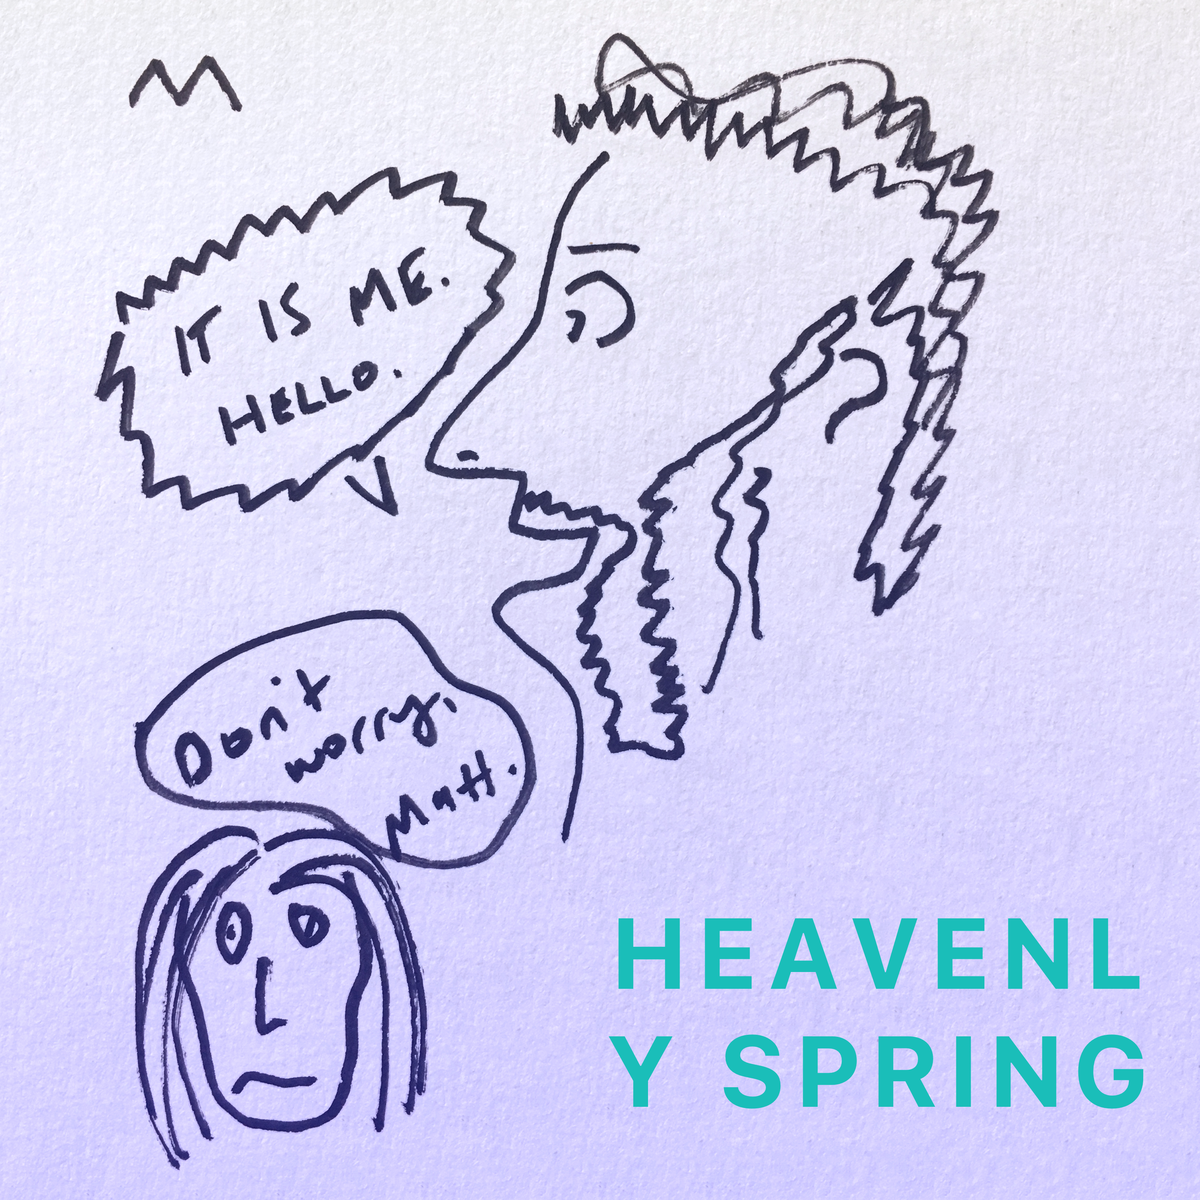 """Chicago indie band Young Man In A Hurry, have released two new singles """"Heavenly Parking Spot,"""" and In the Spring."""" The songs follow their recent release..."""